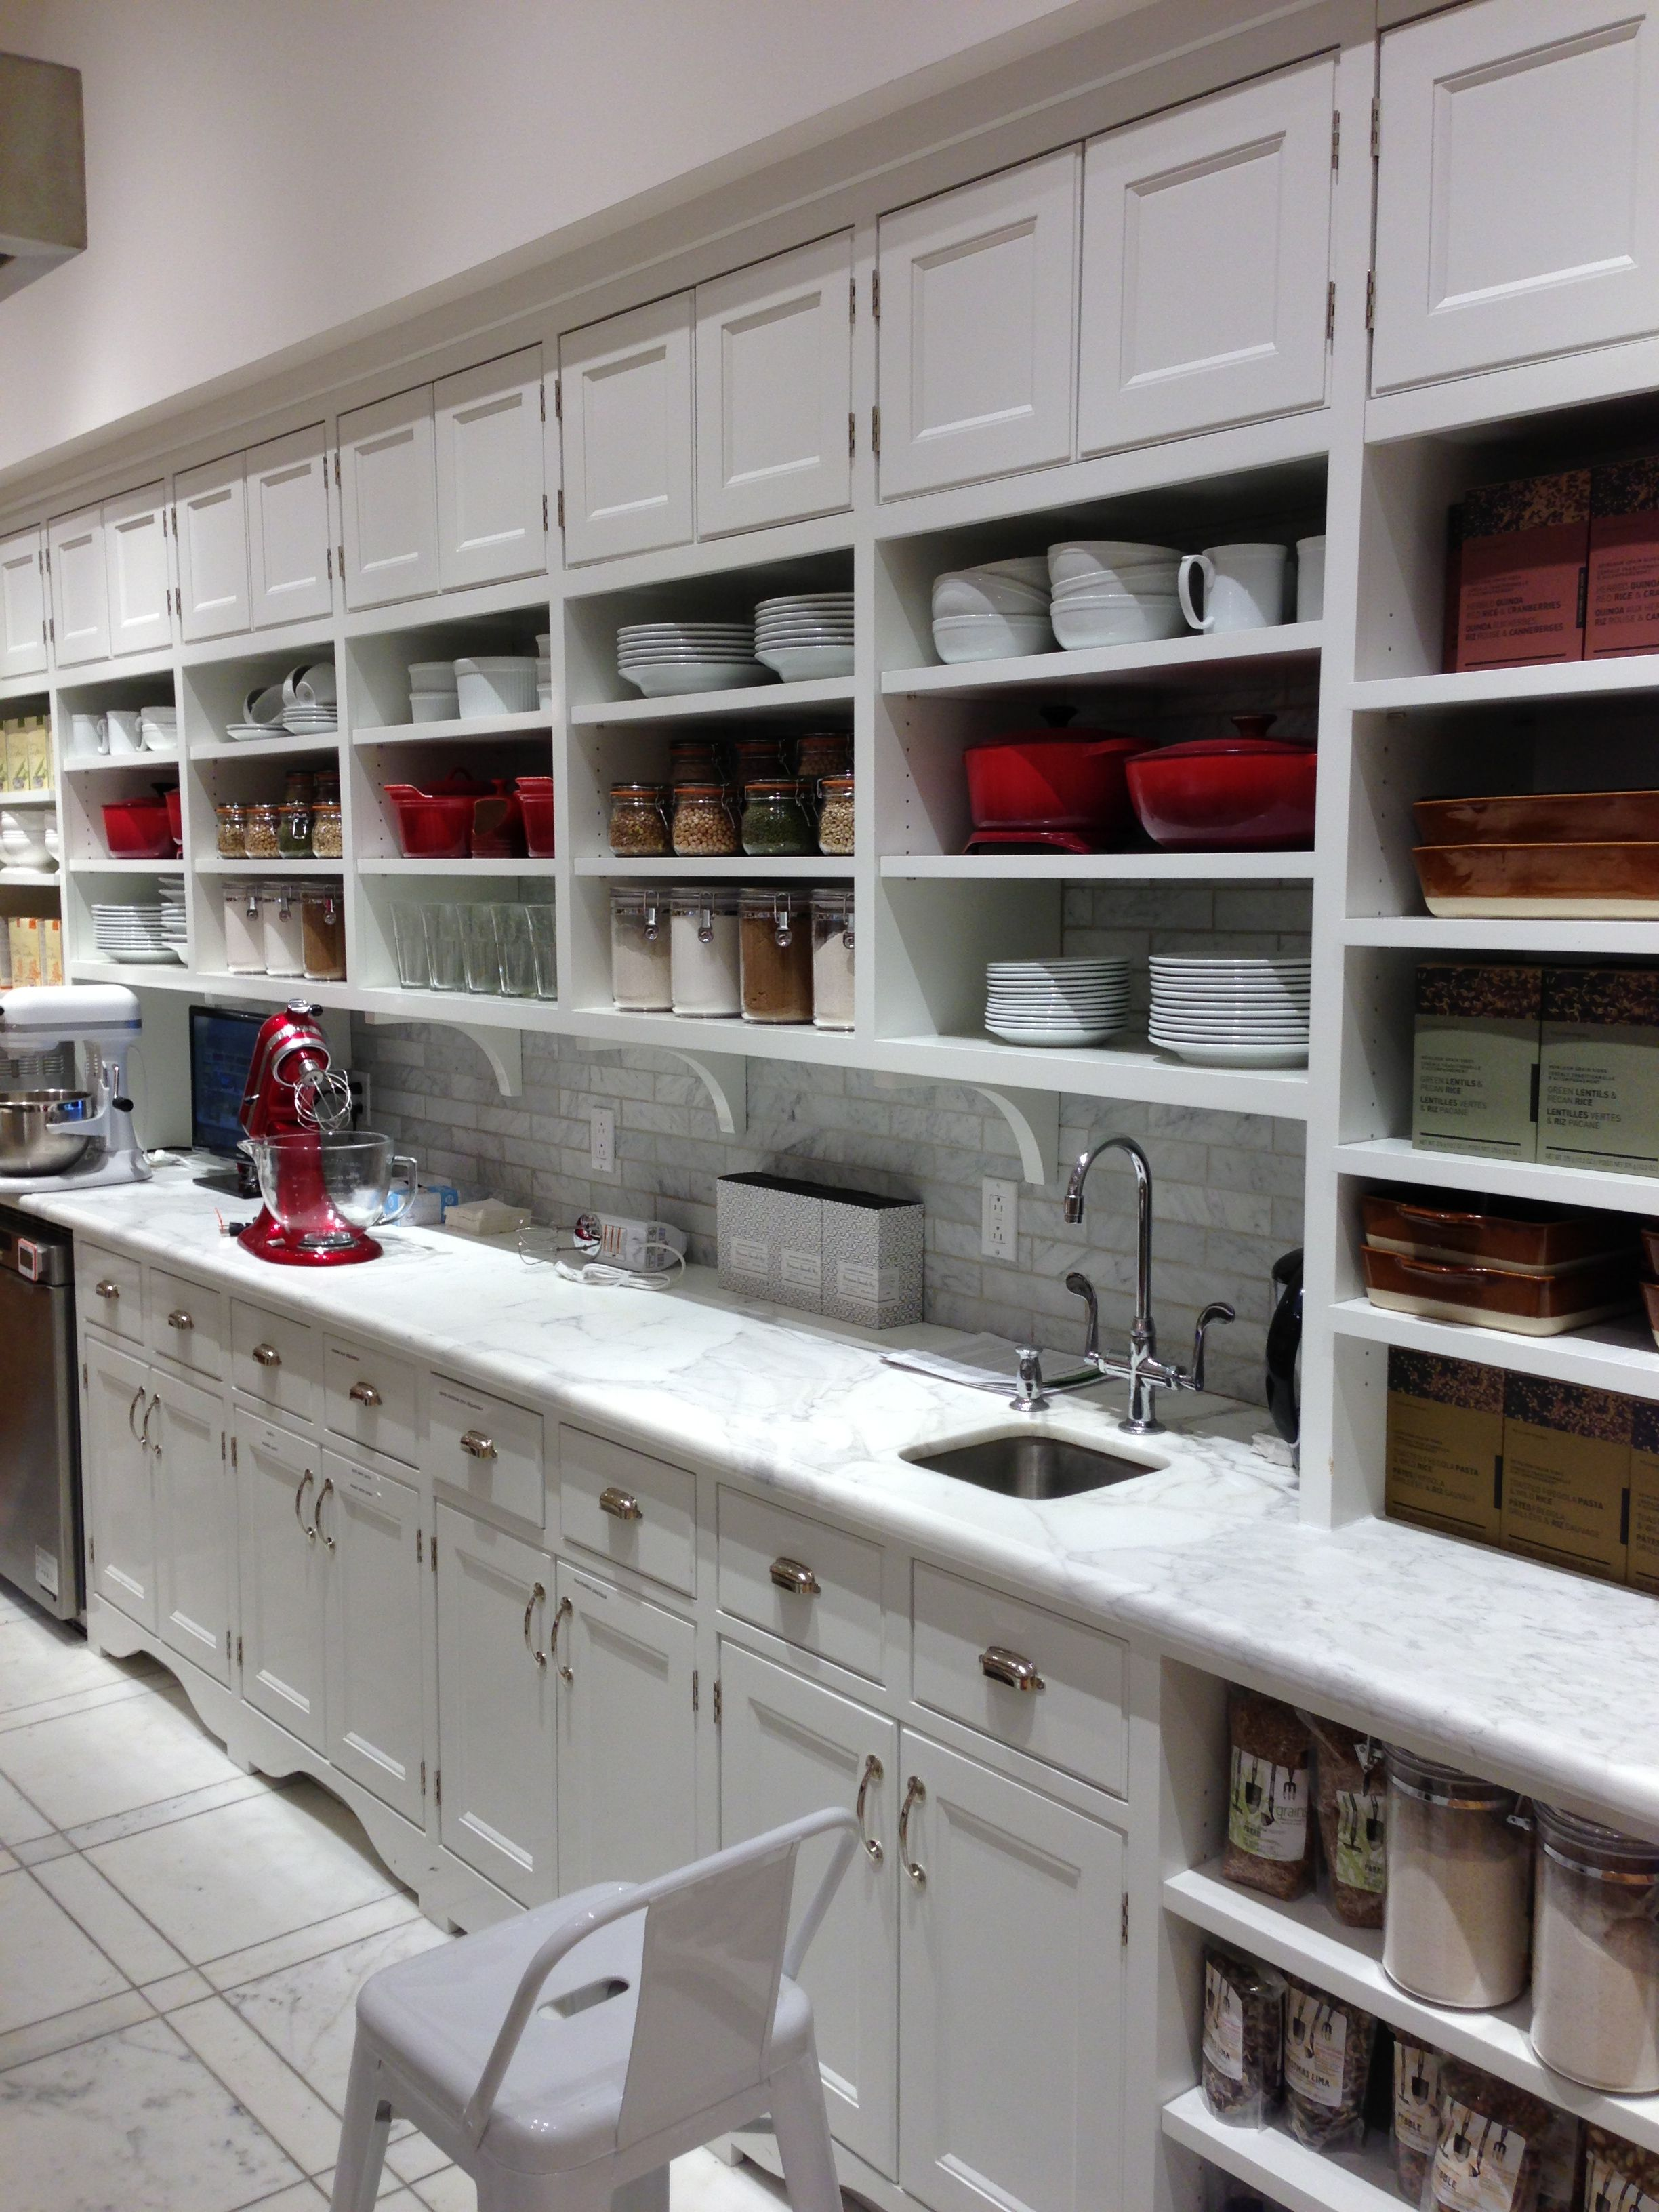 williams sonoma imagine running a cooking school with this with images home kitchens on kitchen organization dishes id=31382